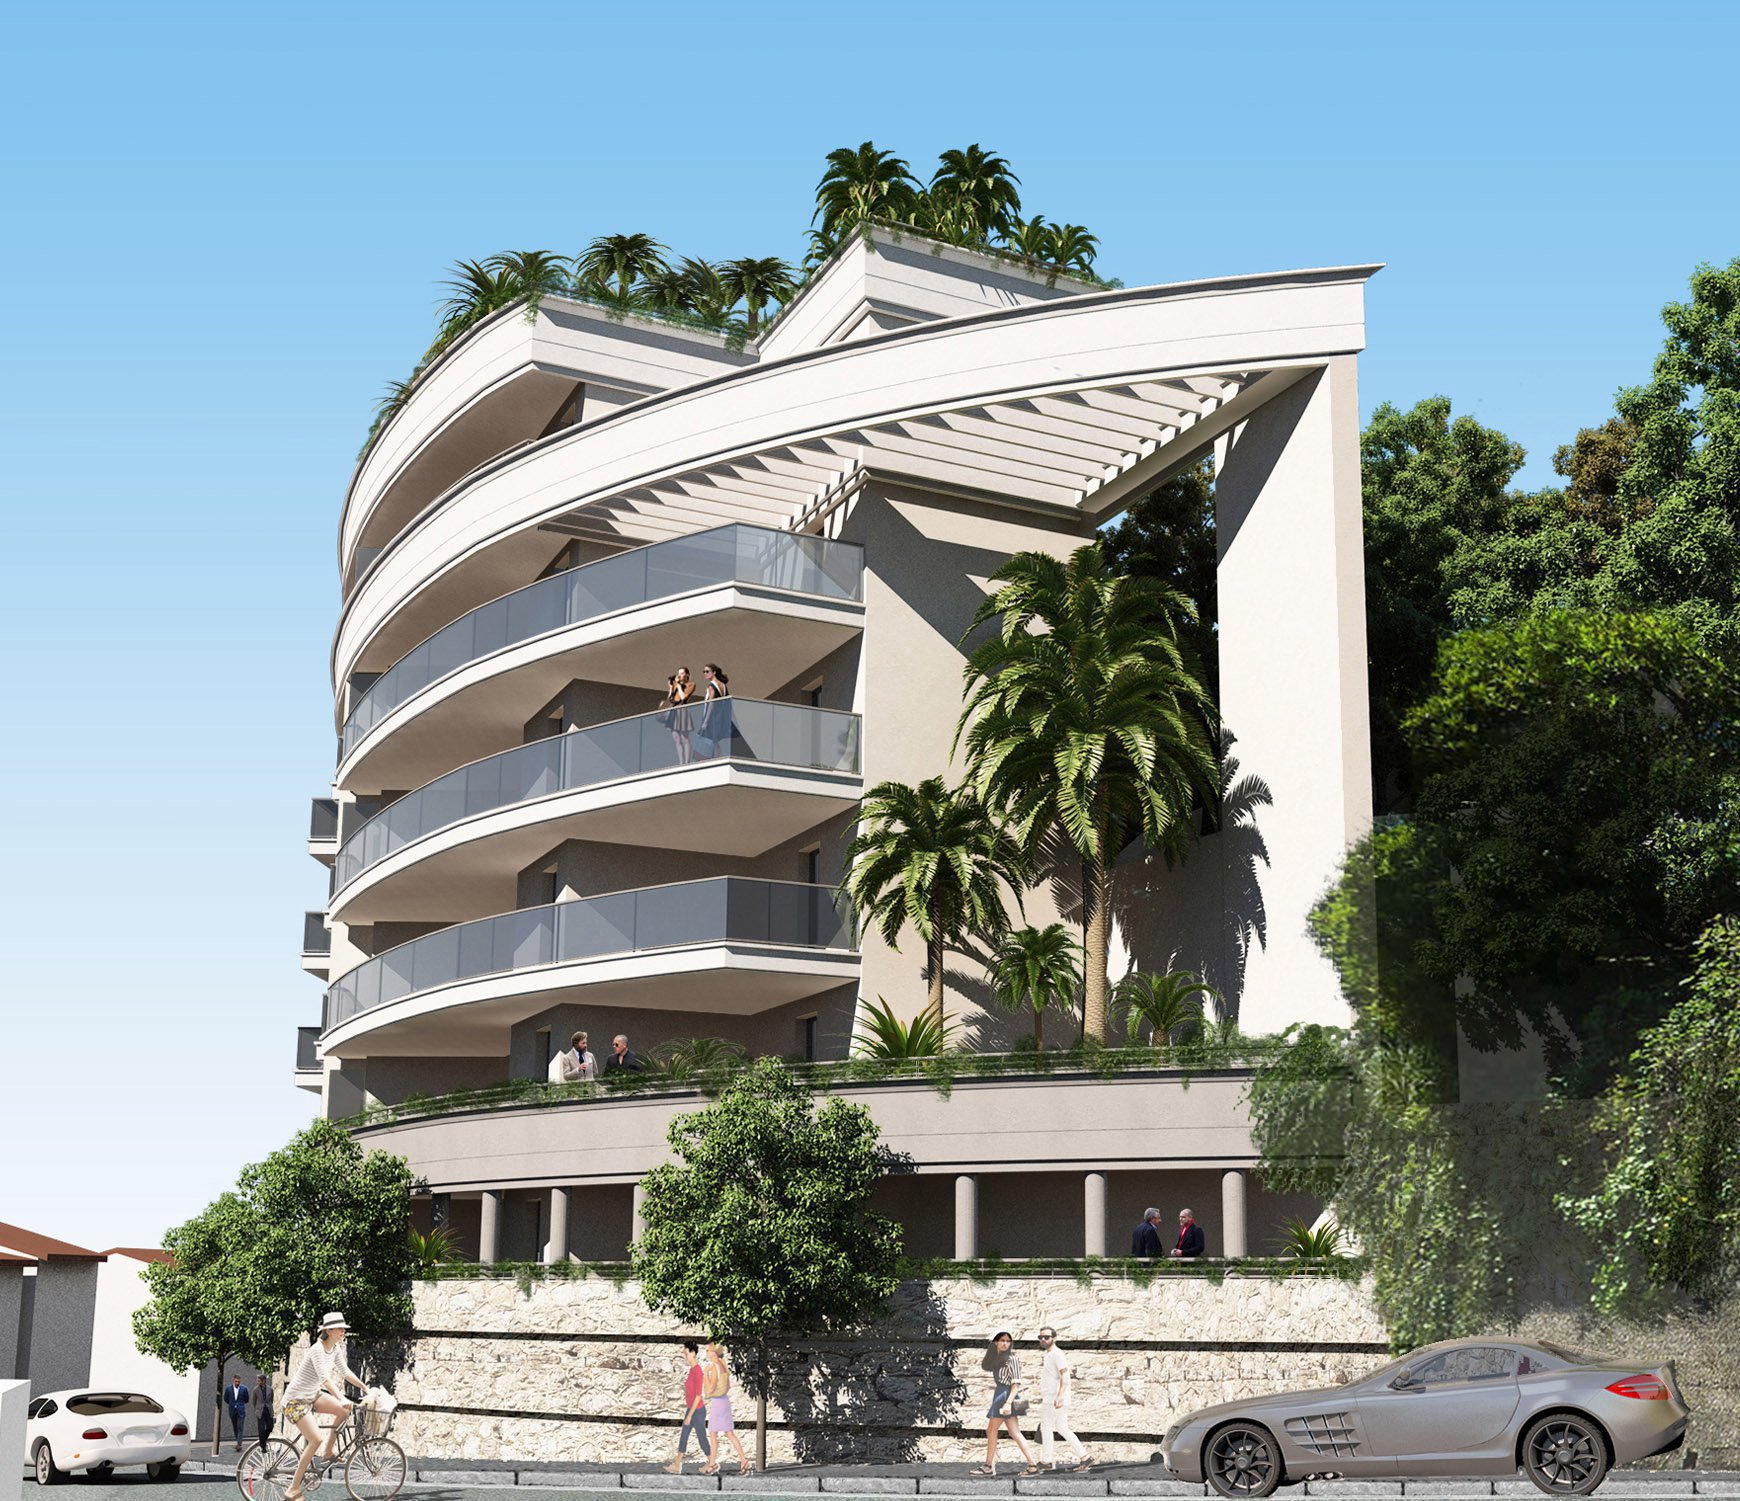 BEAUSOLEIL - Frecnh Riviera - Luxury 3 Bed - Top floor - Sea view and large terrace